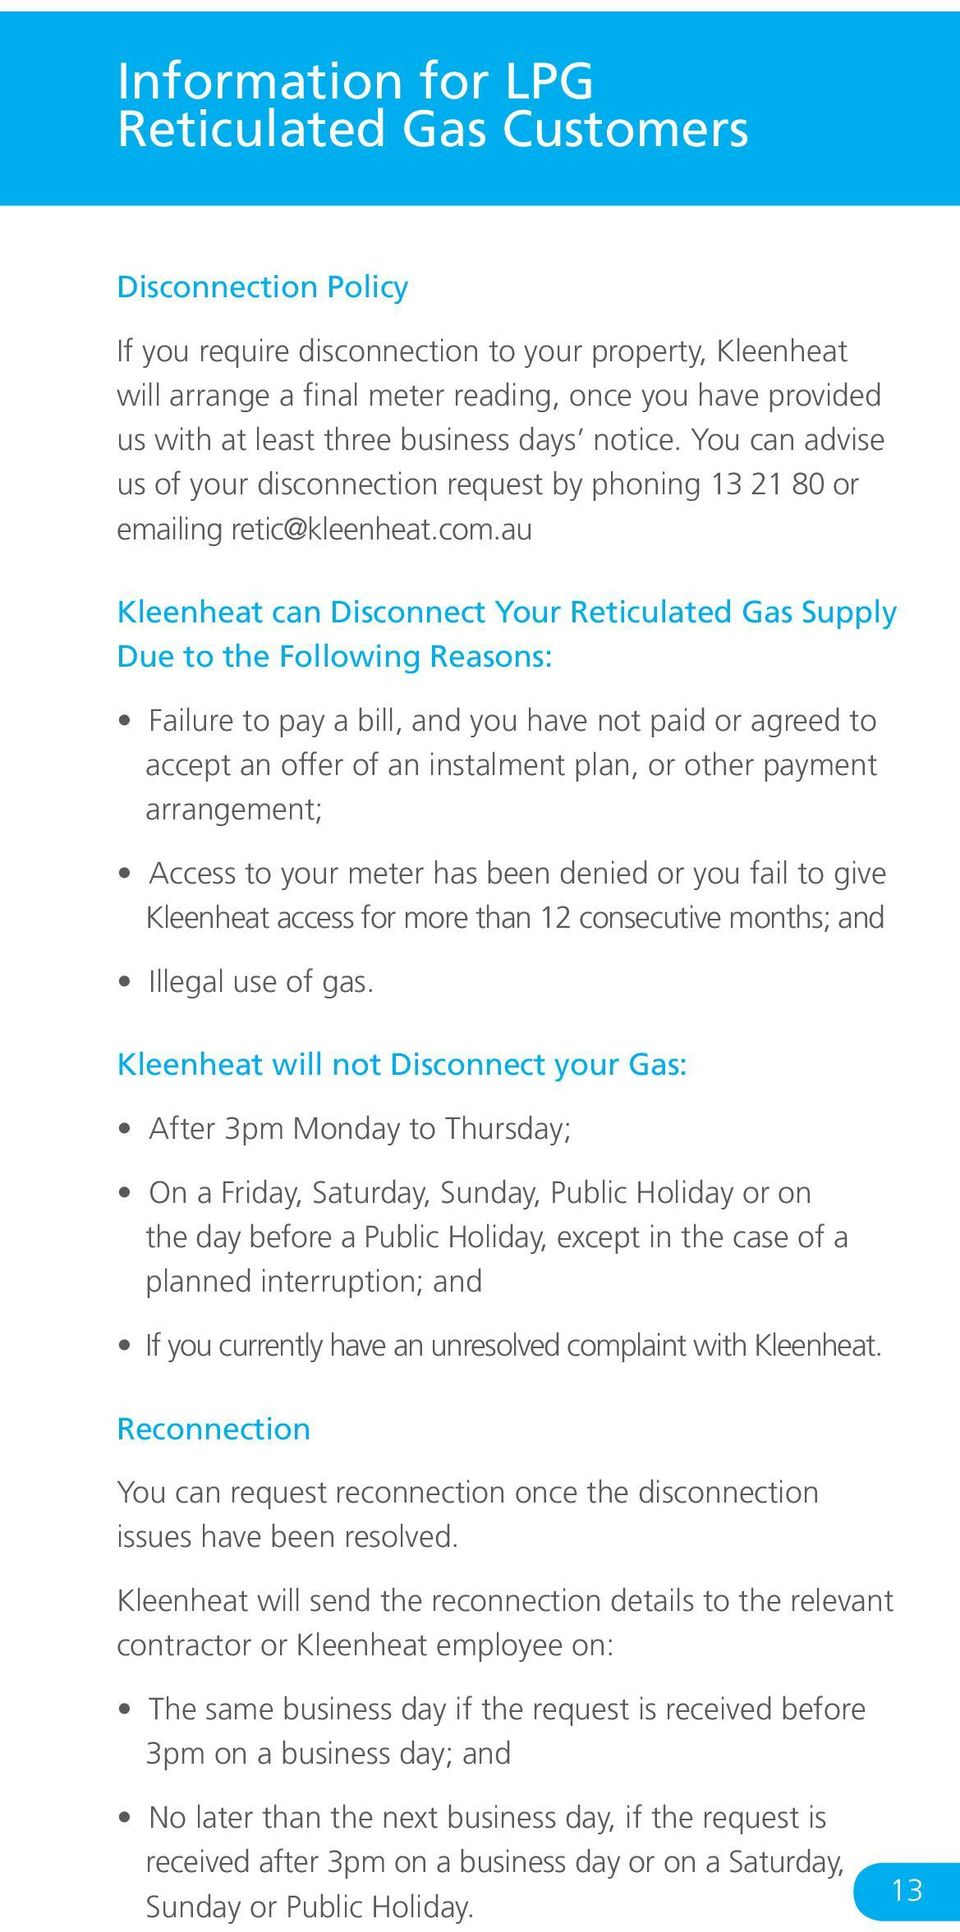 au Kleenheat can Disconnect Your Reticulated Gas Supply Due to the Following Reasons: Failure to pay a bill, and you have not paid or agreed to accept an offer of an instalment plan, or other payment